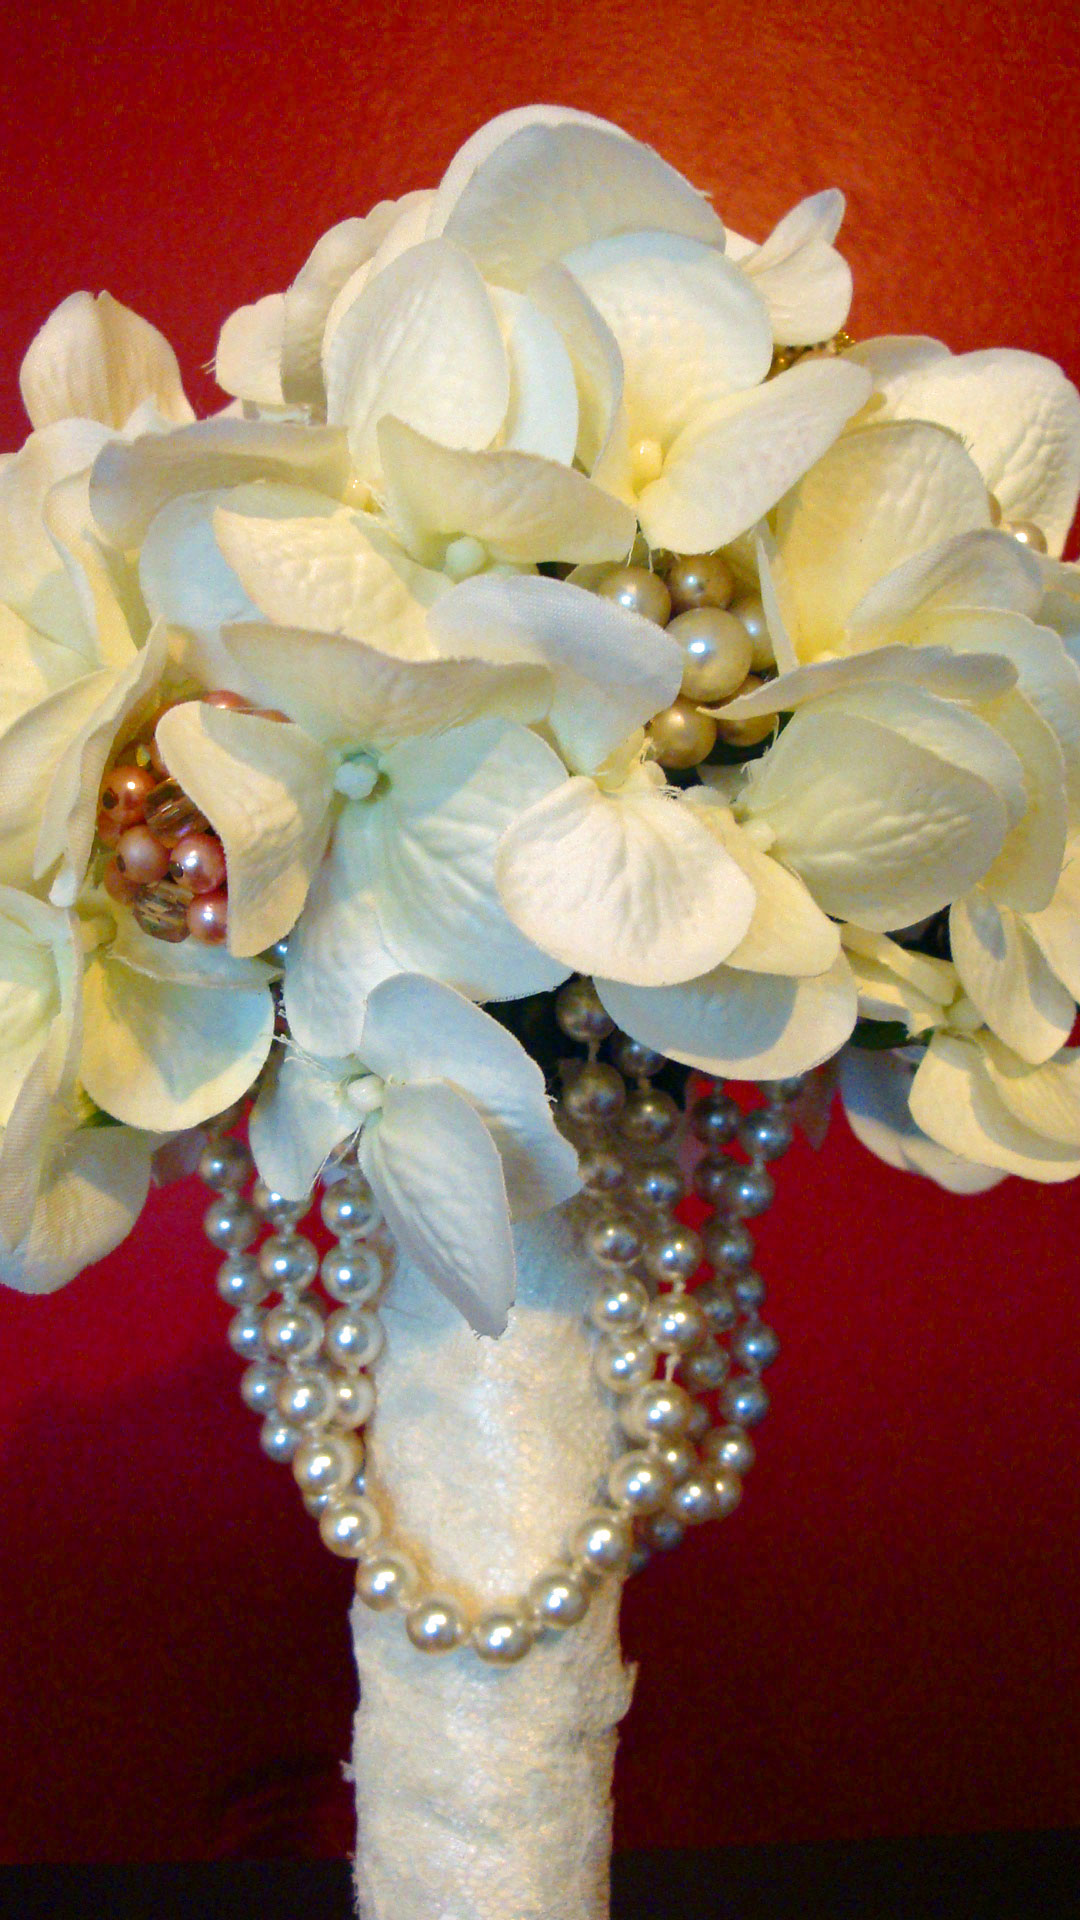 Silk hydrangea flowers and cintage jewelry bouquet with pearl draping